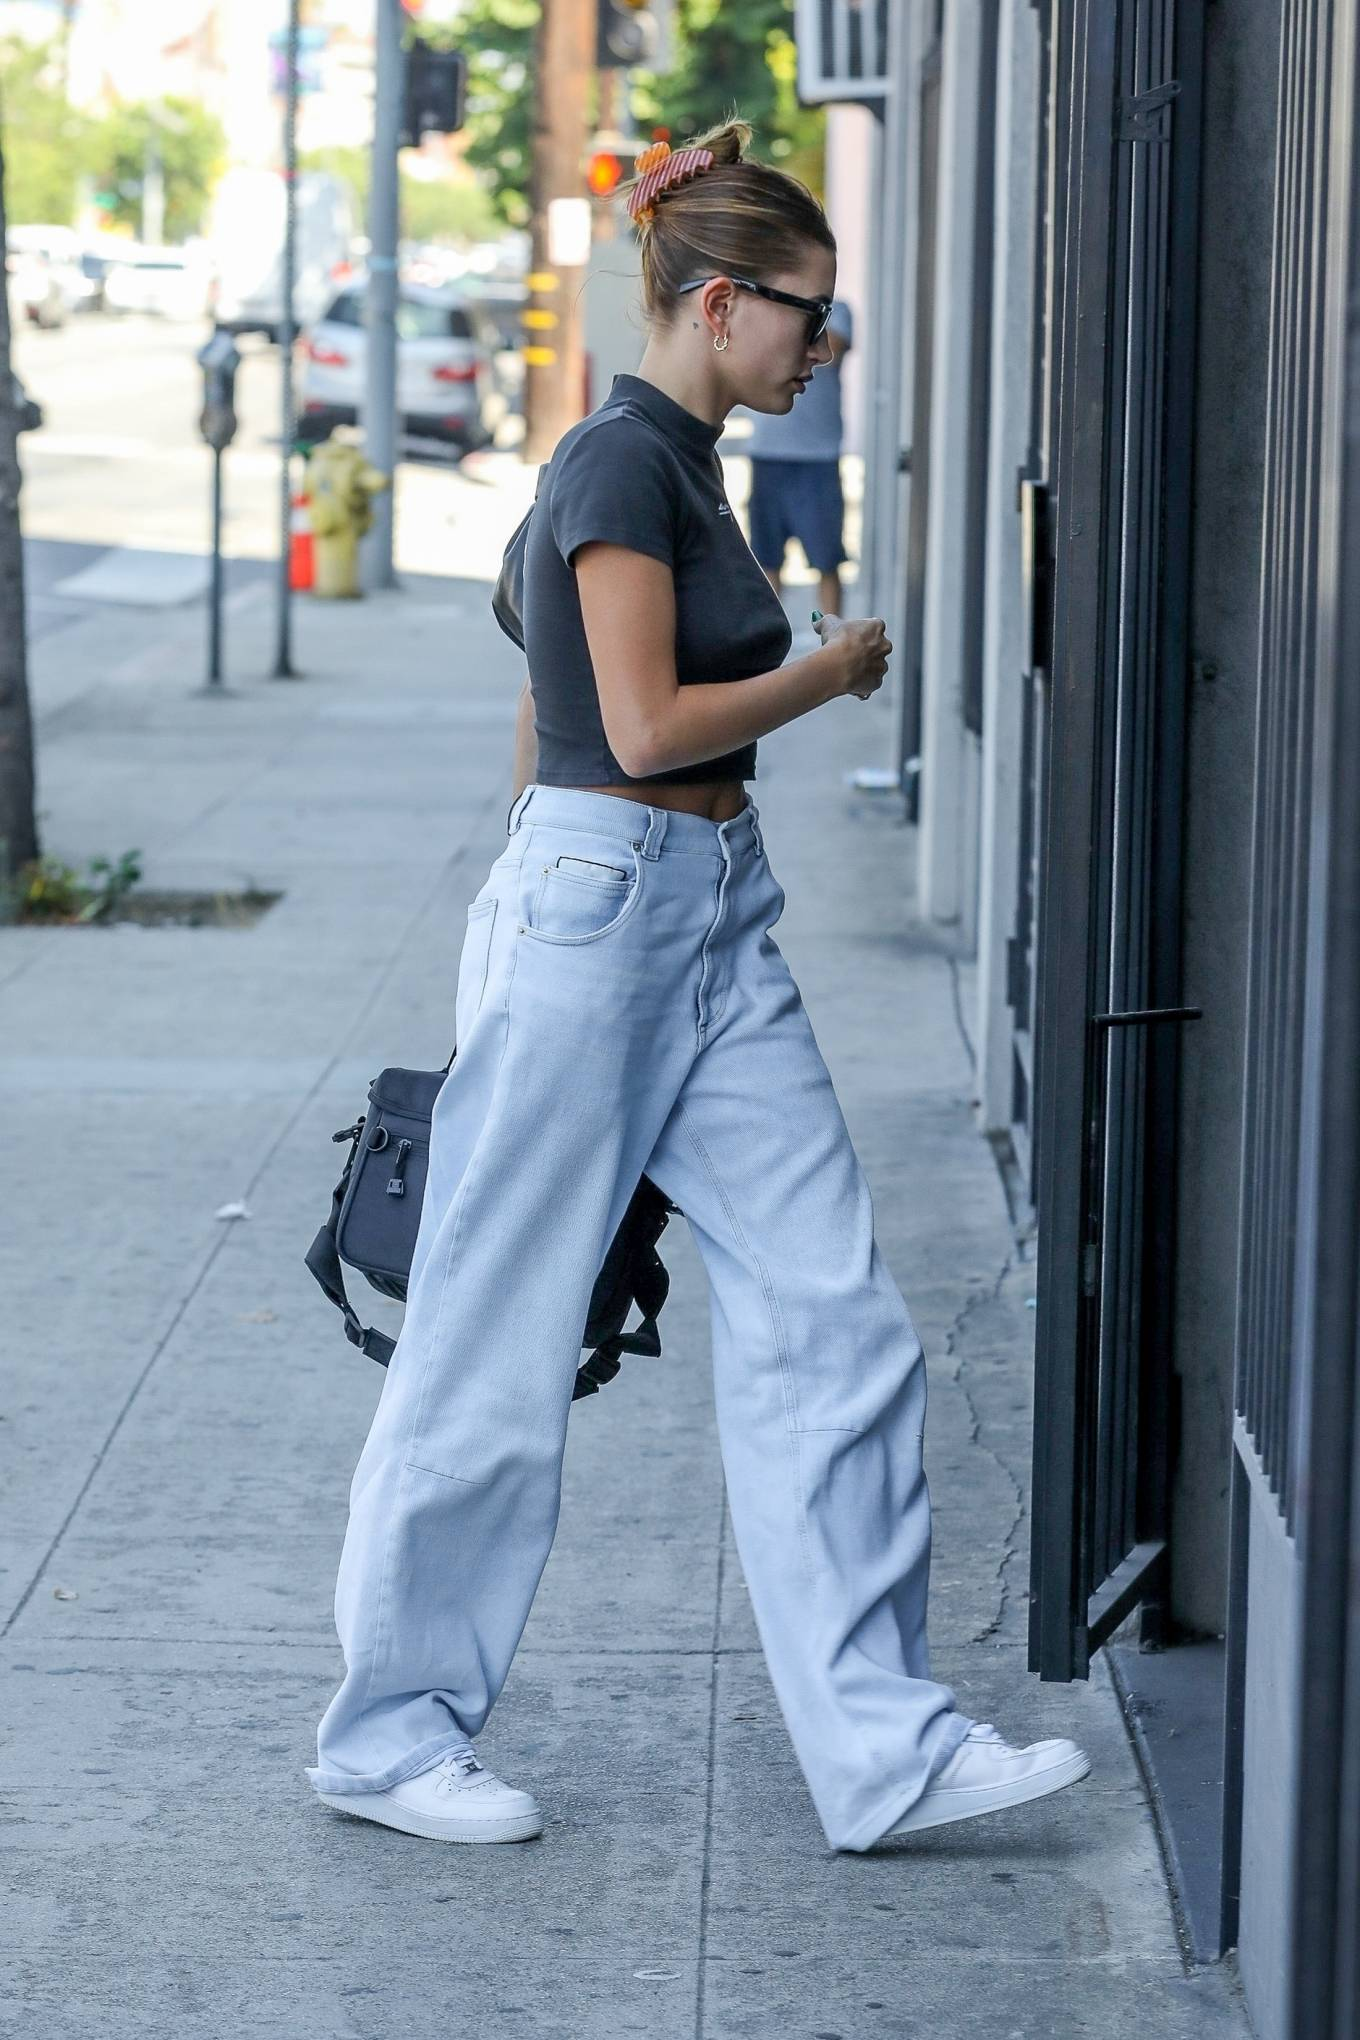 Hailey Baldwin wearing a fitted black crop top with a cotton fabric, short sleeves, brand logo and a high neck